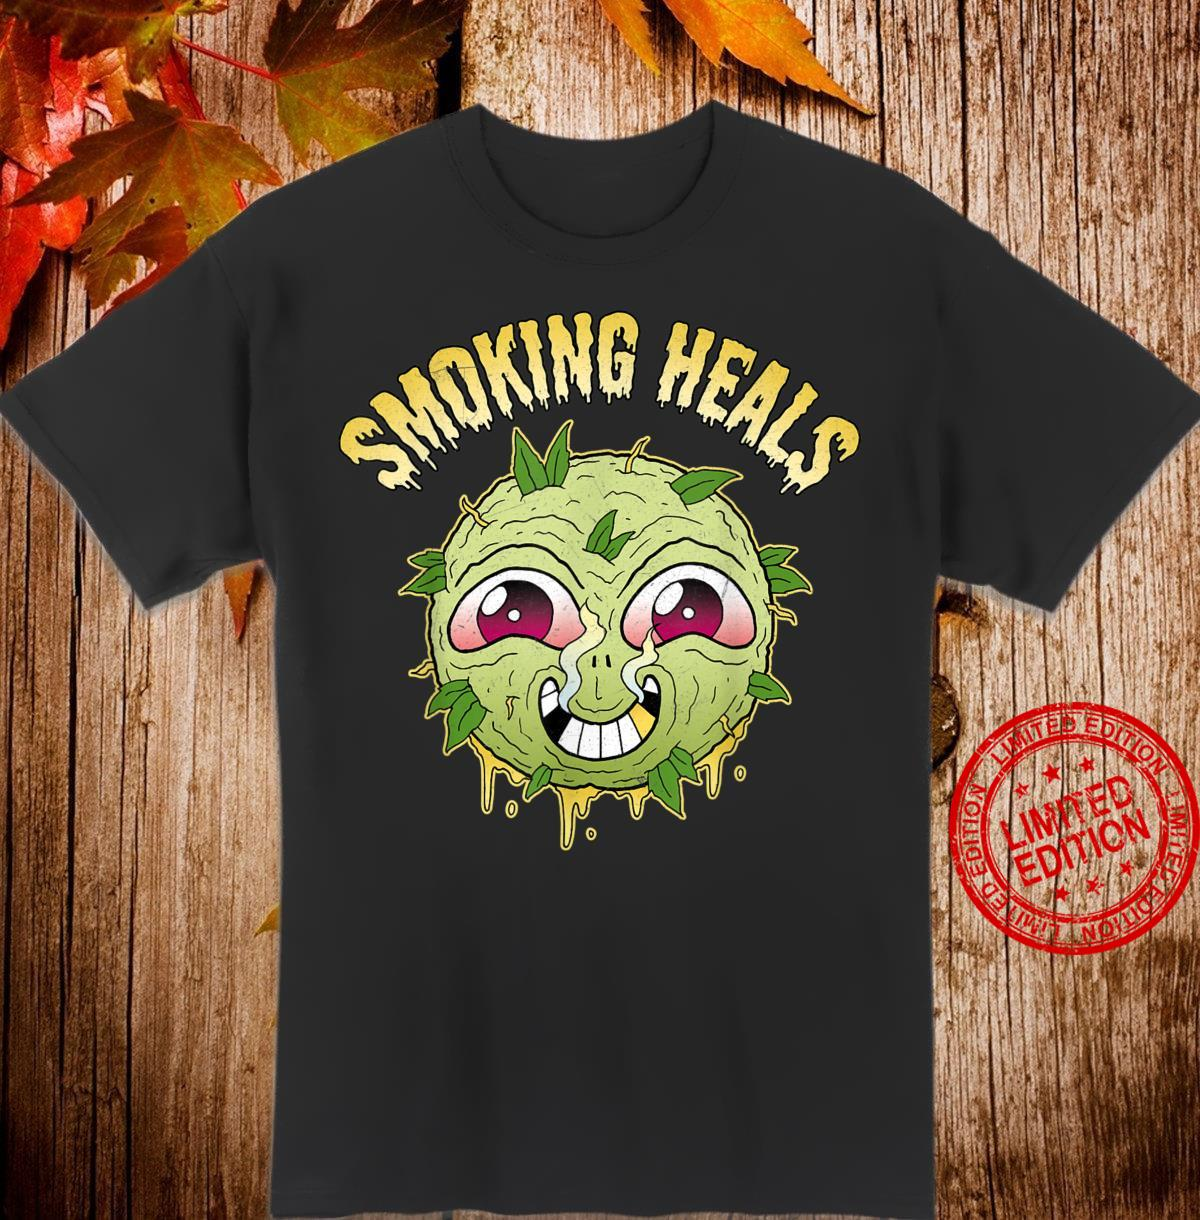 Smoking Weed Heals Medical Marijuana CBD Stoner Shirt